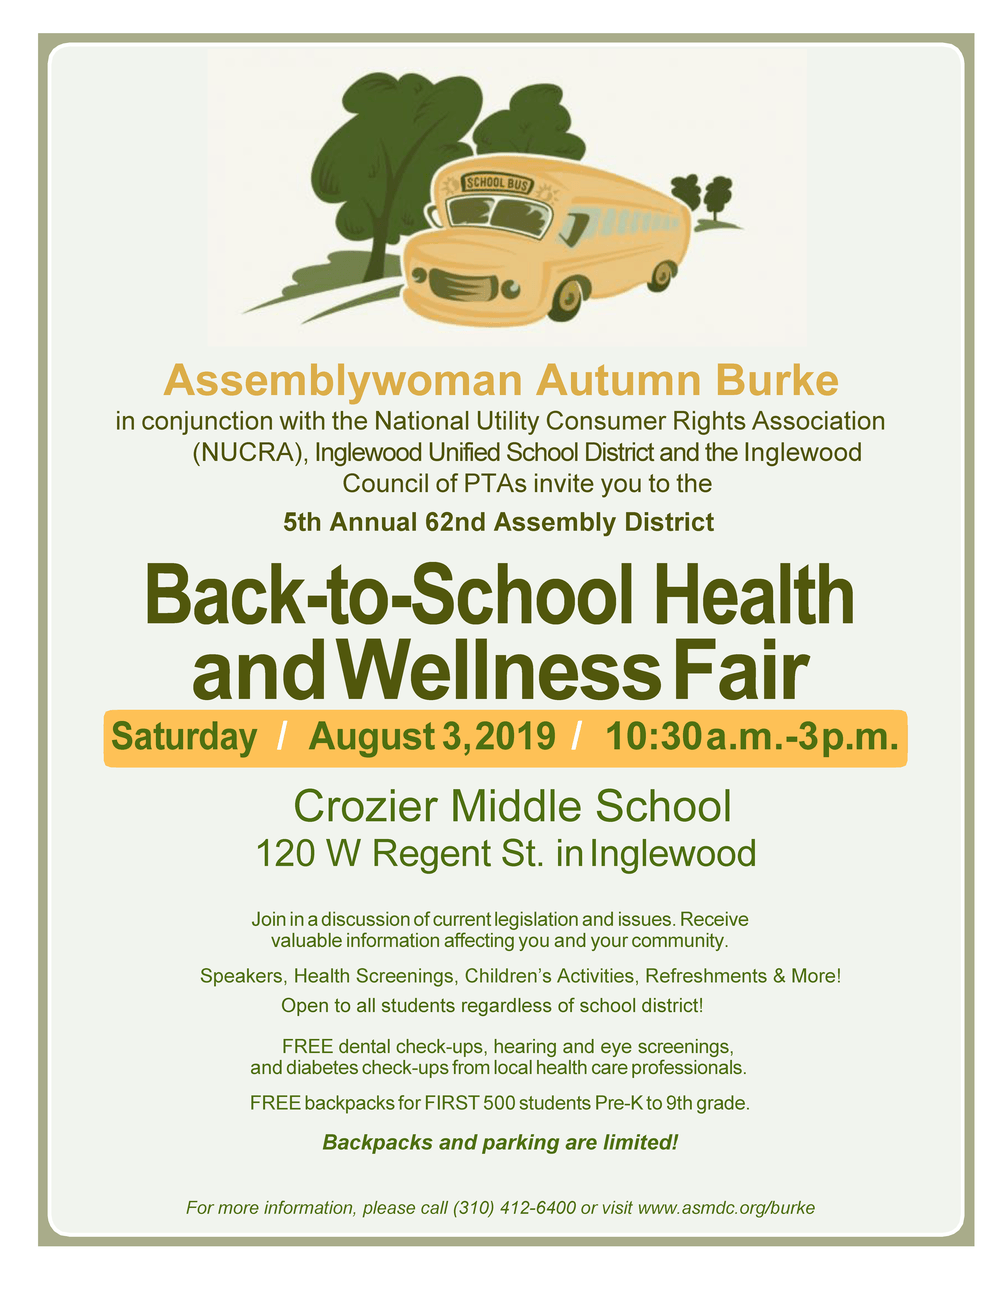 Back-to-School Health Fair Flyer